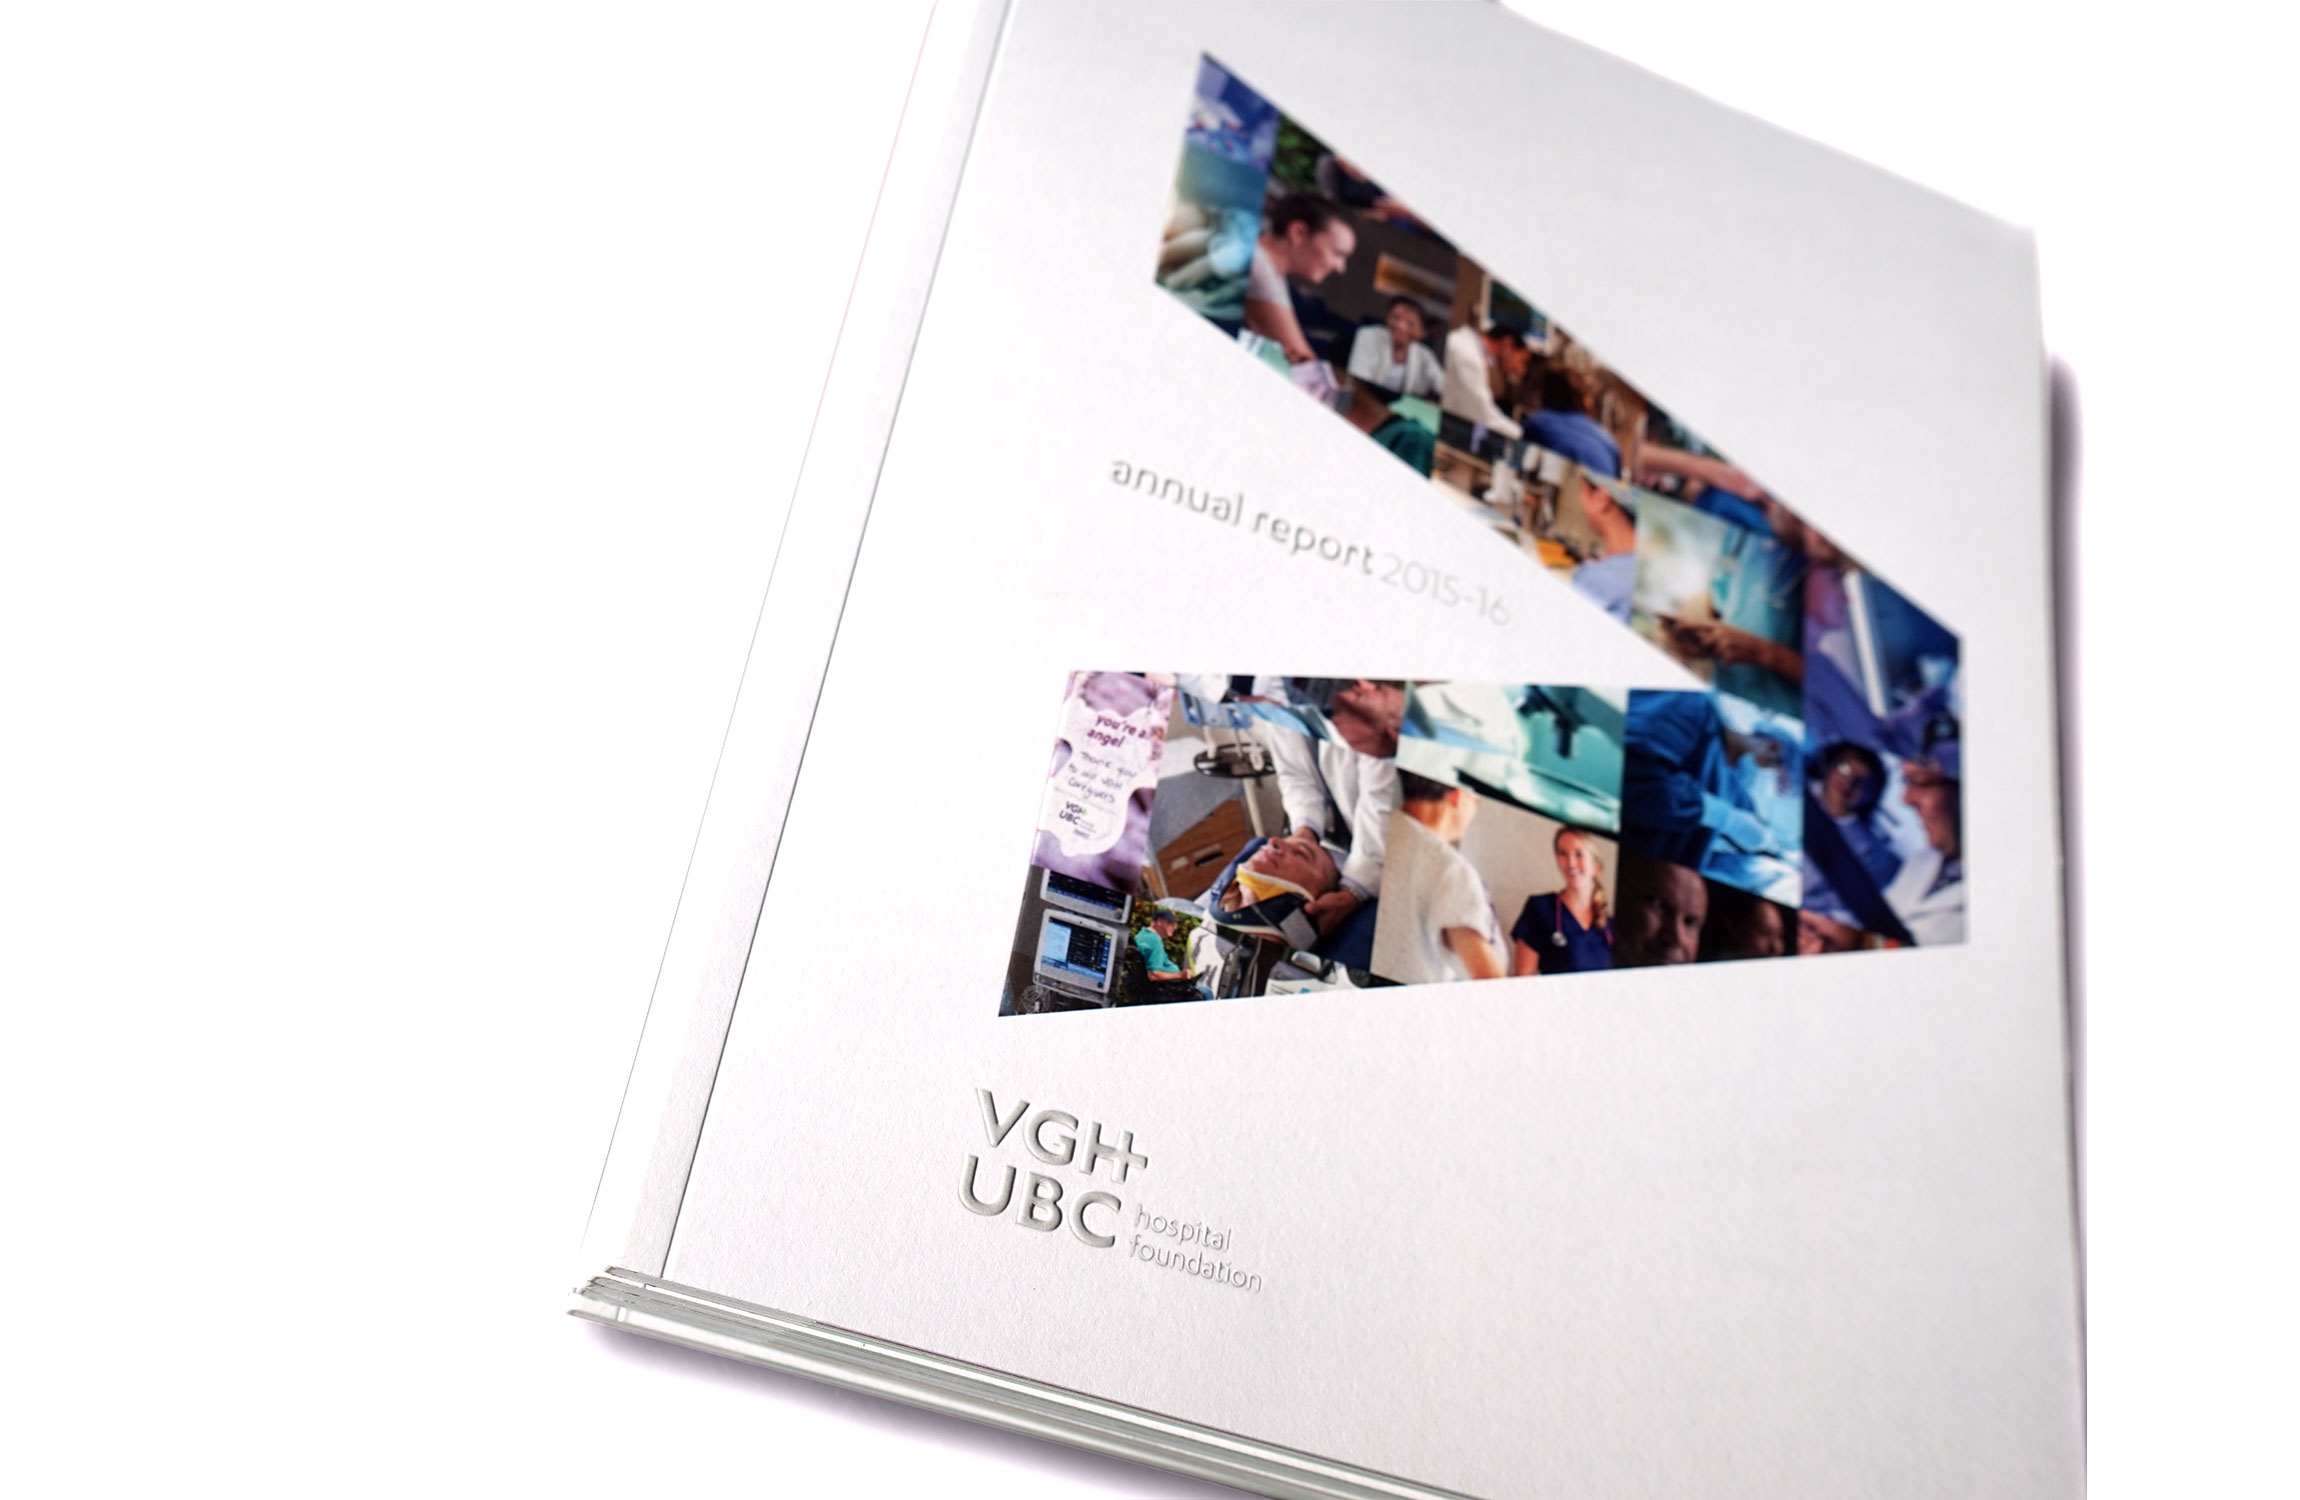 vgh_ubc_hospital_foundation_annual_report-image